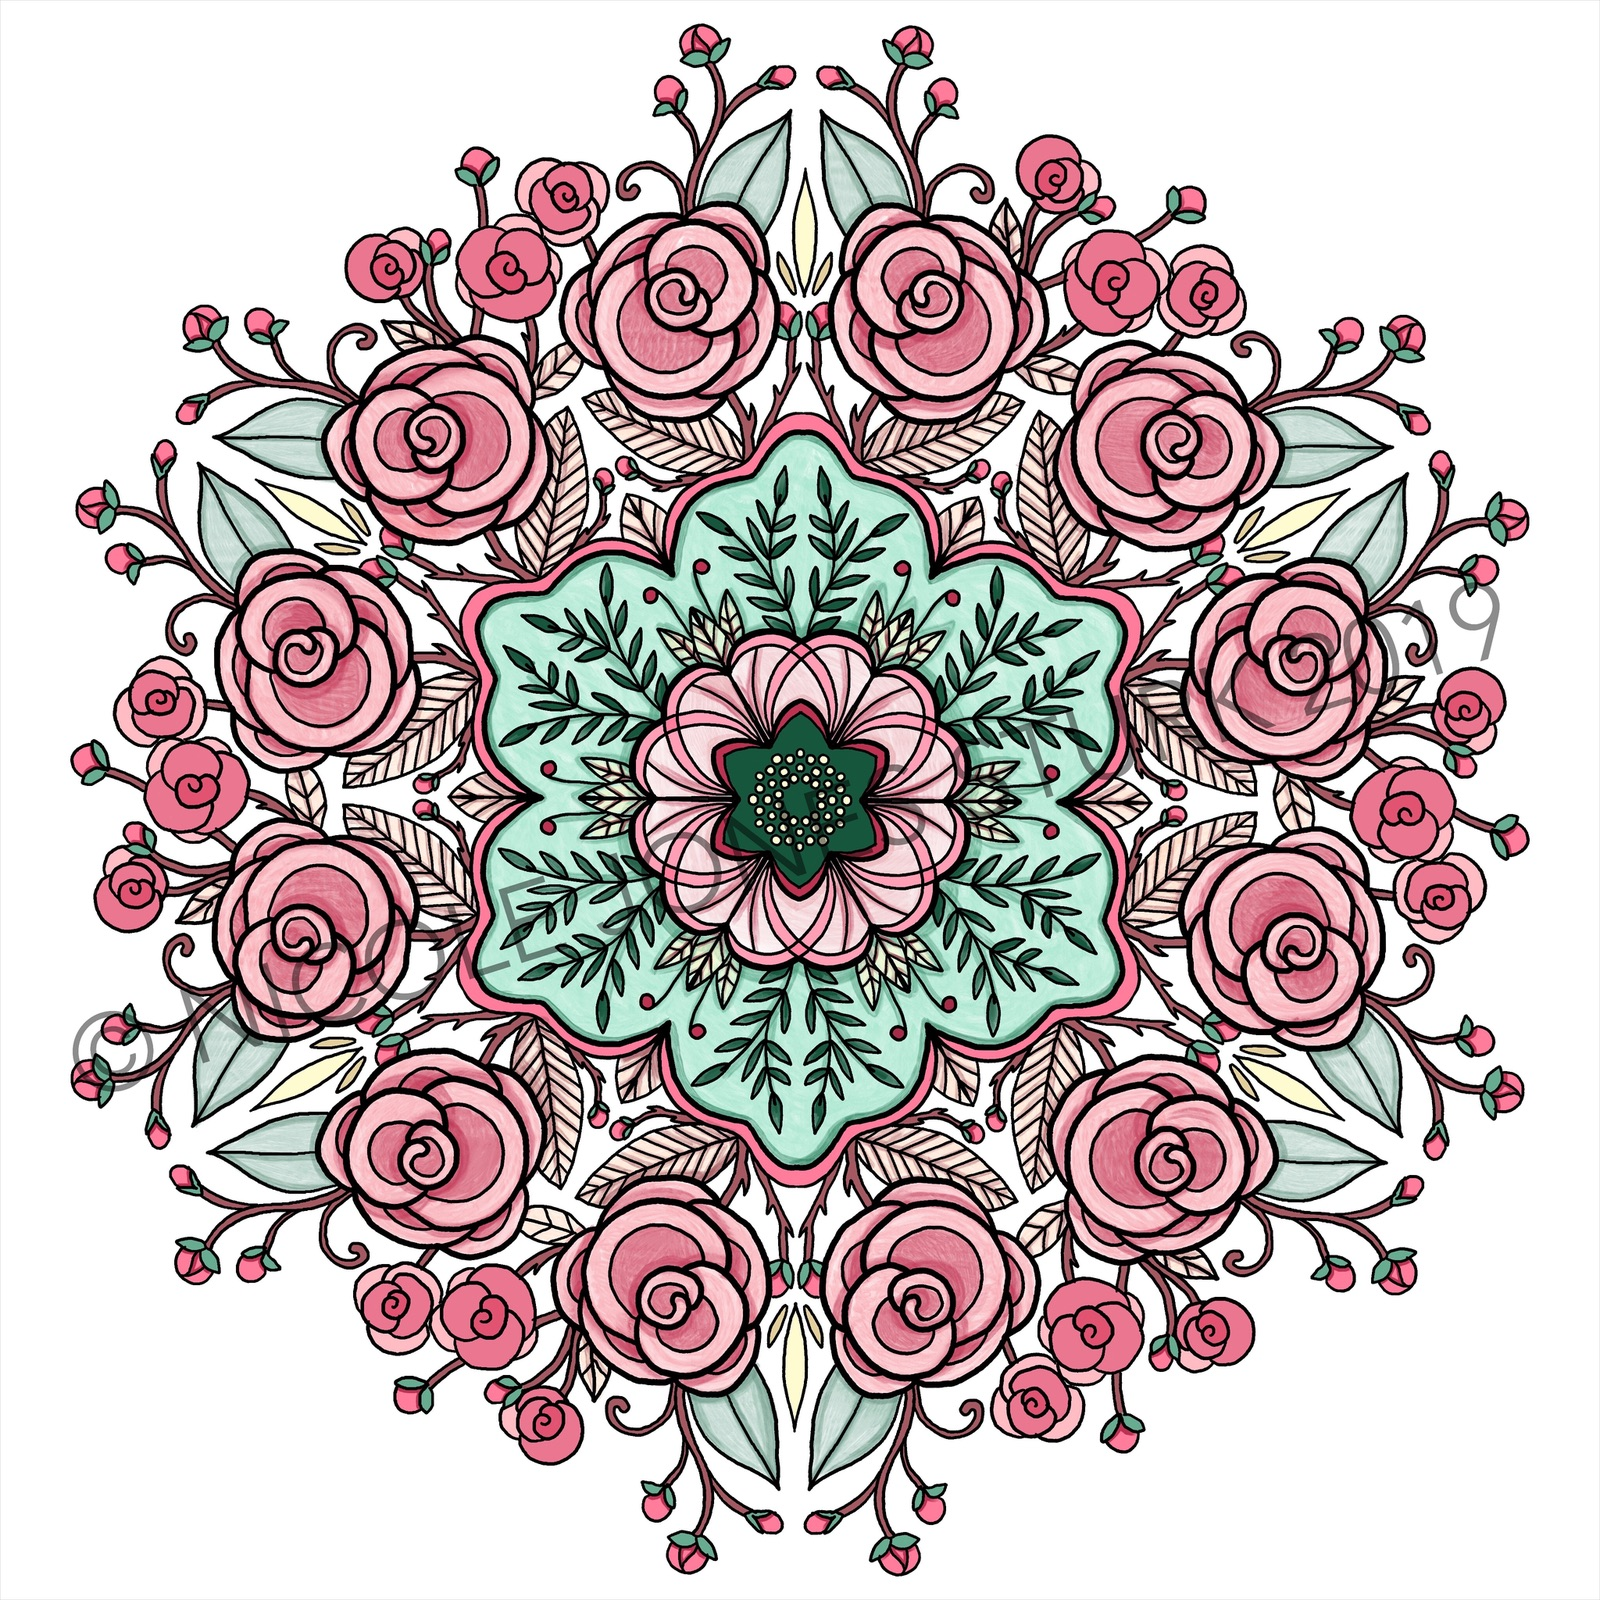 Colored mandala used for the cover art.